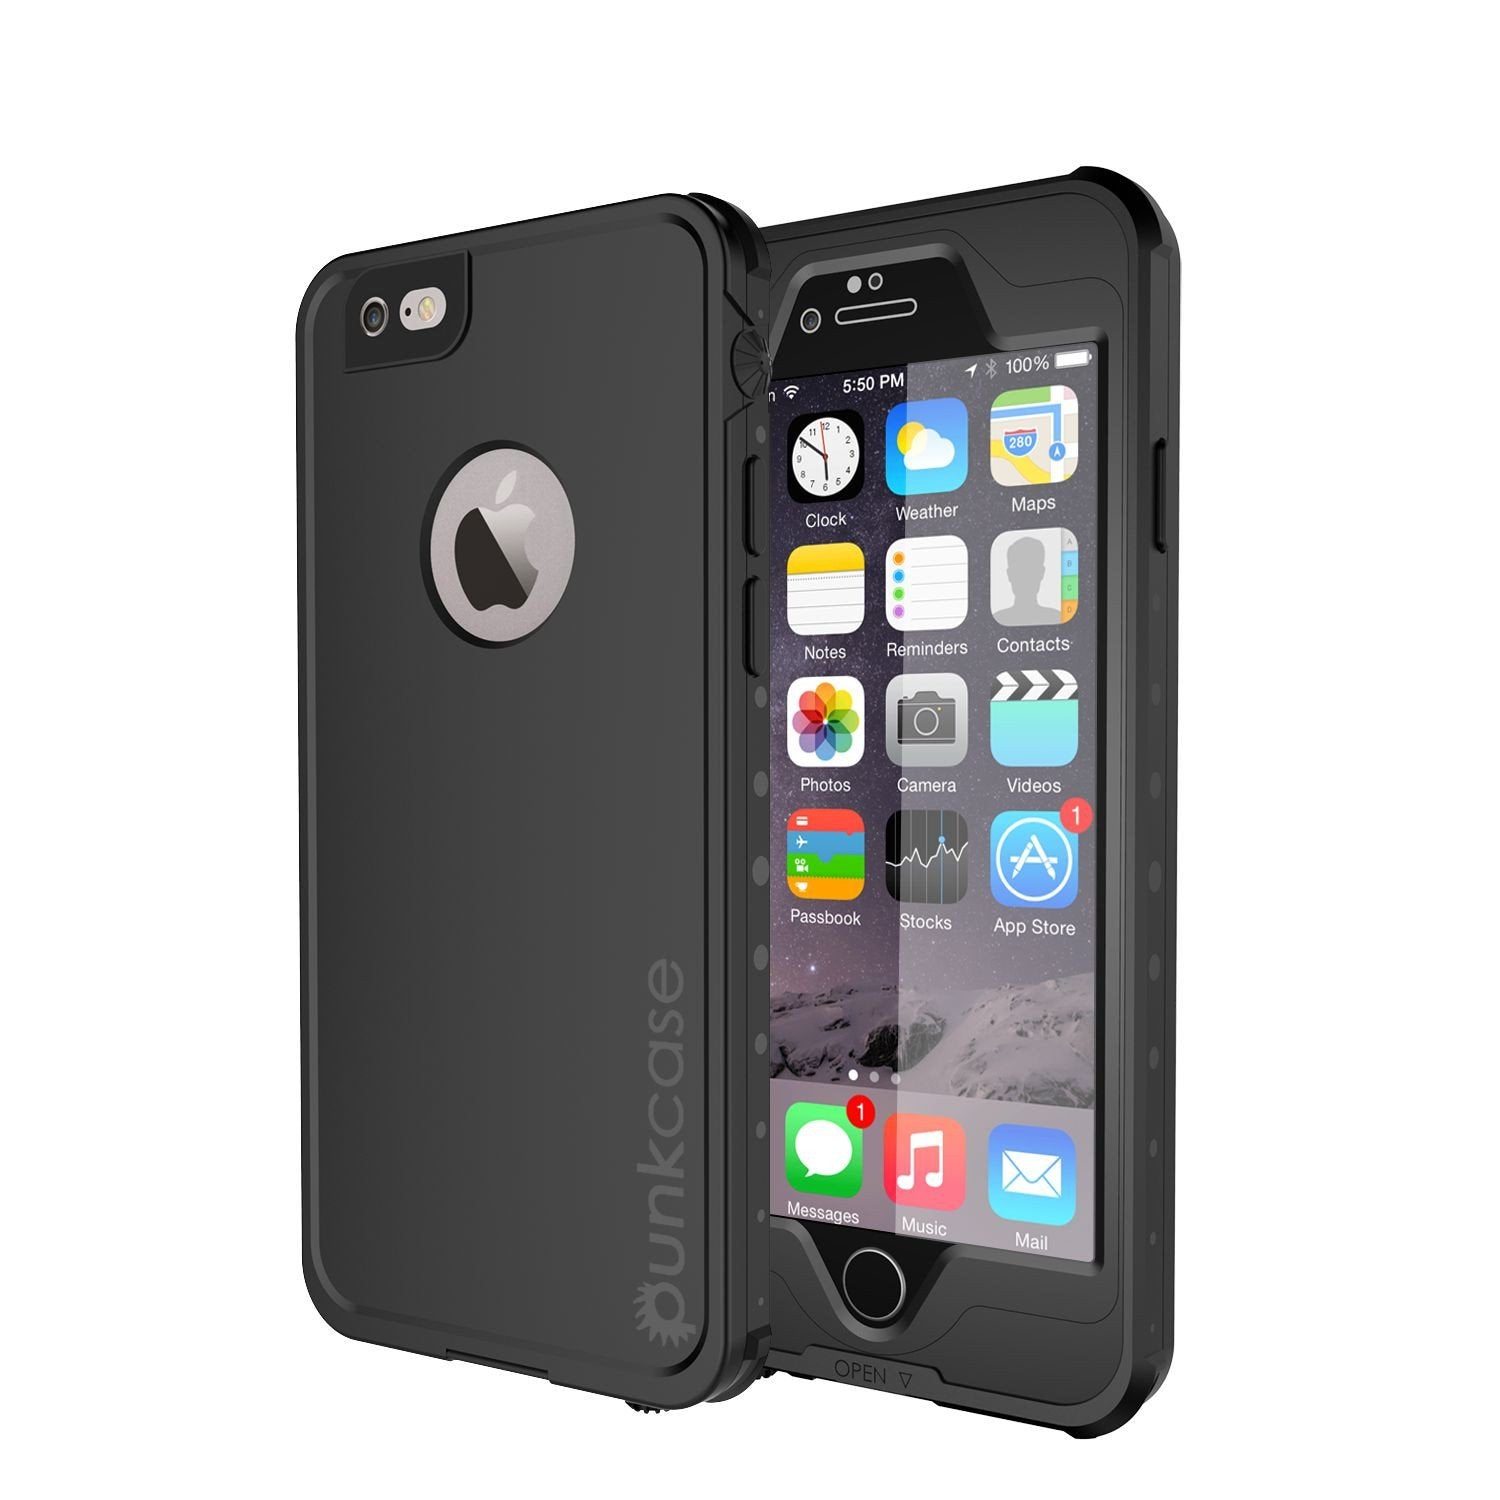 iPhone 6s/6 Waterproof Case PunkCase StudStar Black w/ Attached Screen Protector | Lifetime Warranty